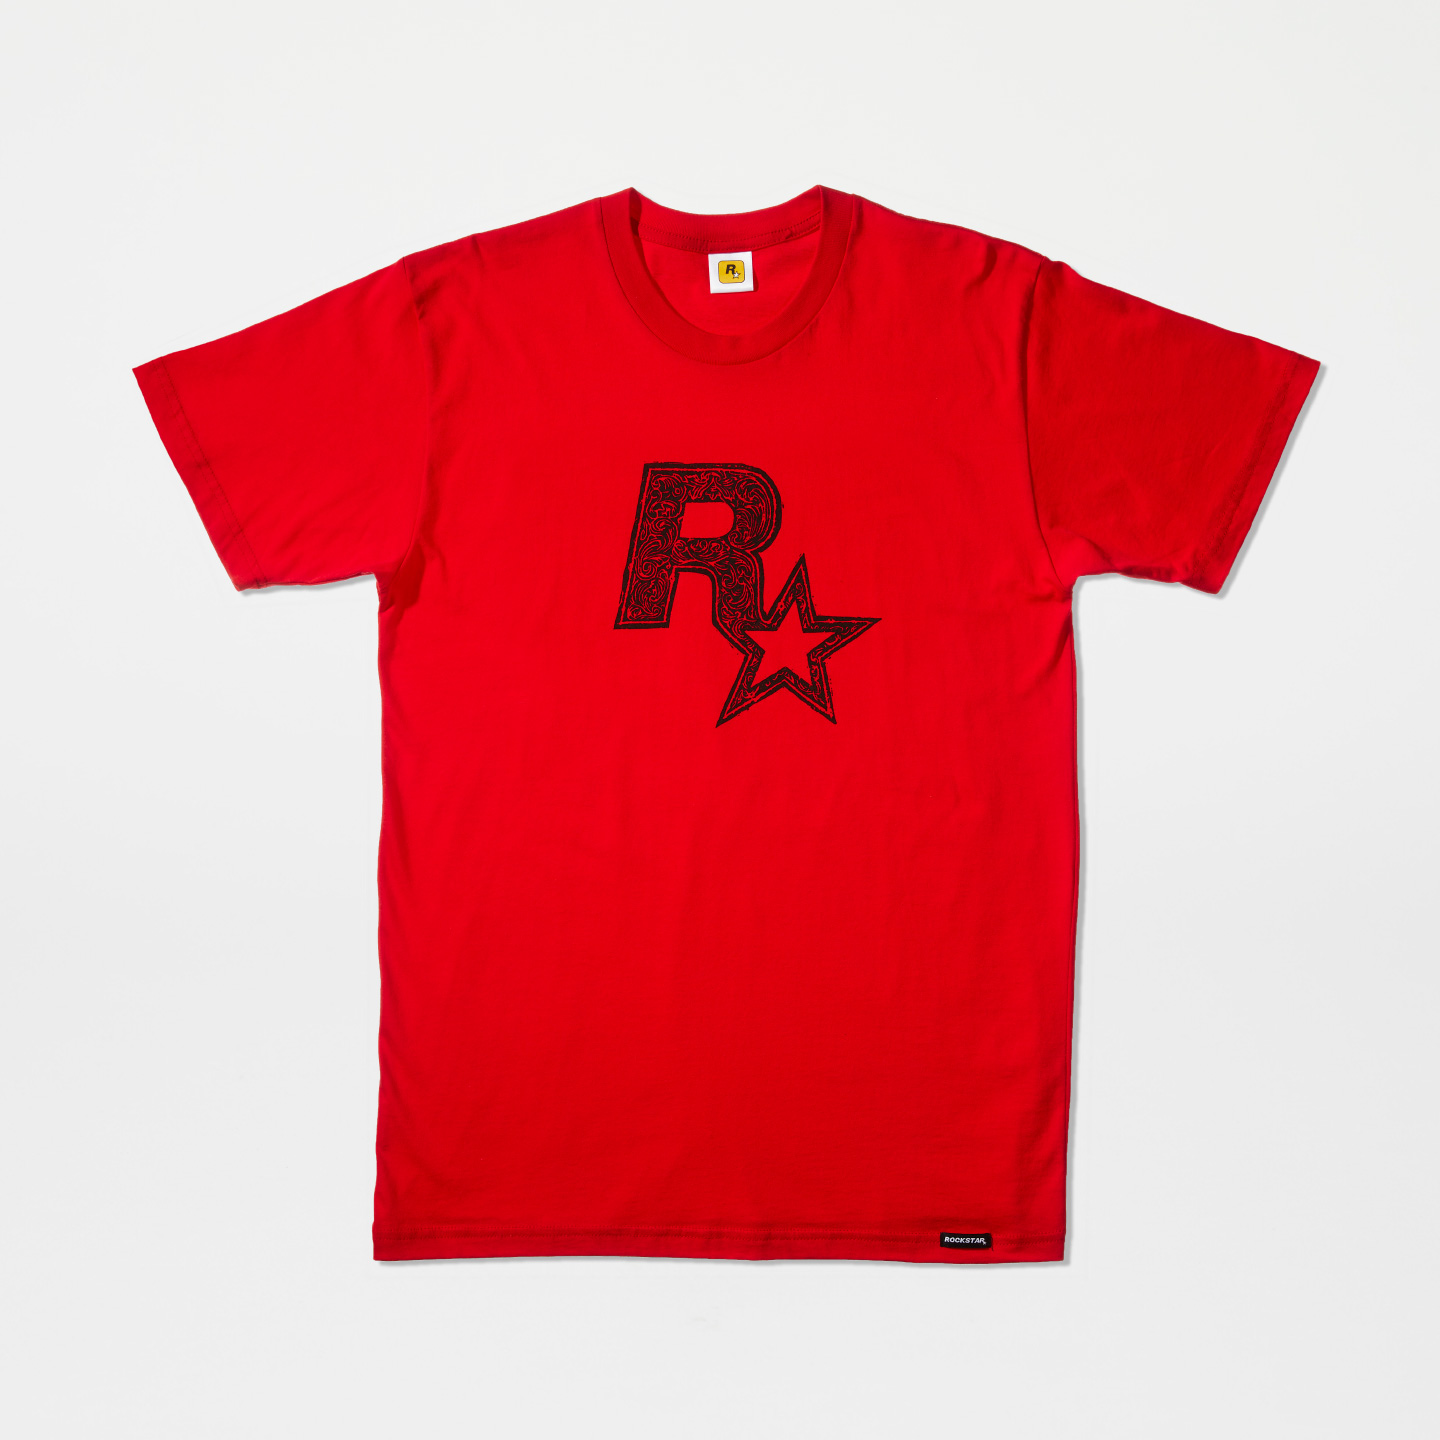 Black on Red Linocut Rockstar Games Logo Tee